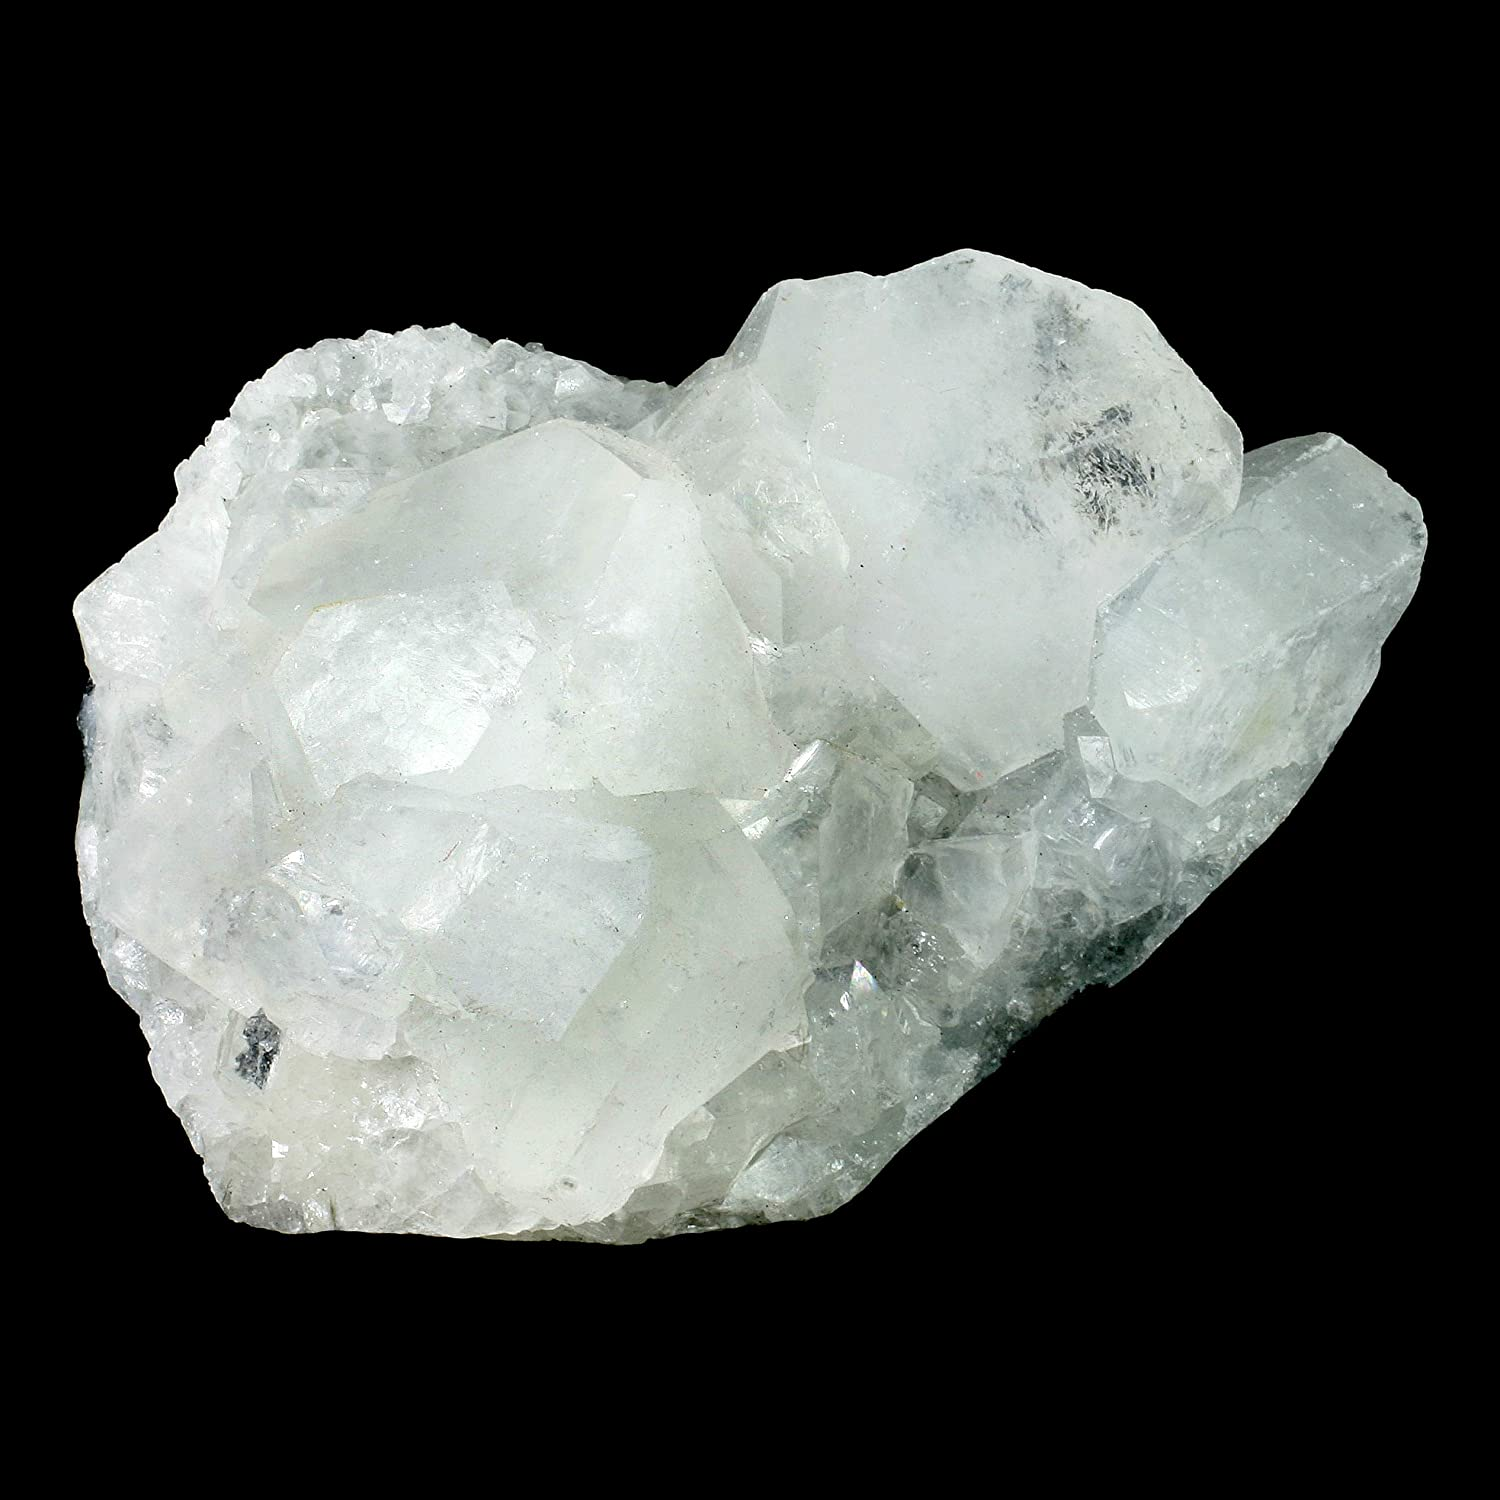 Apophyllite Meanings, Properties and Uses